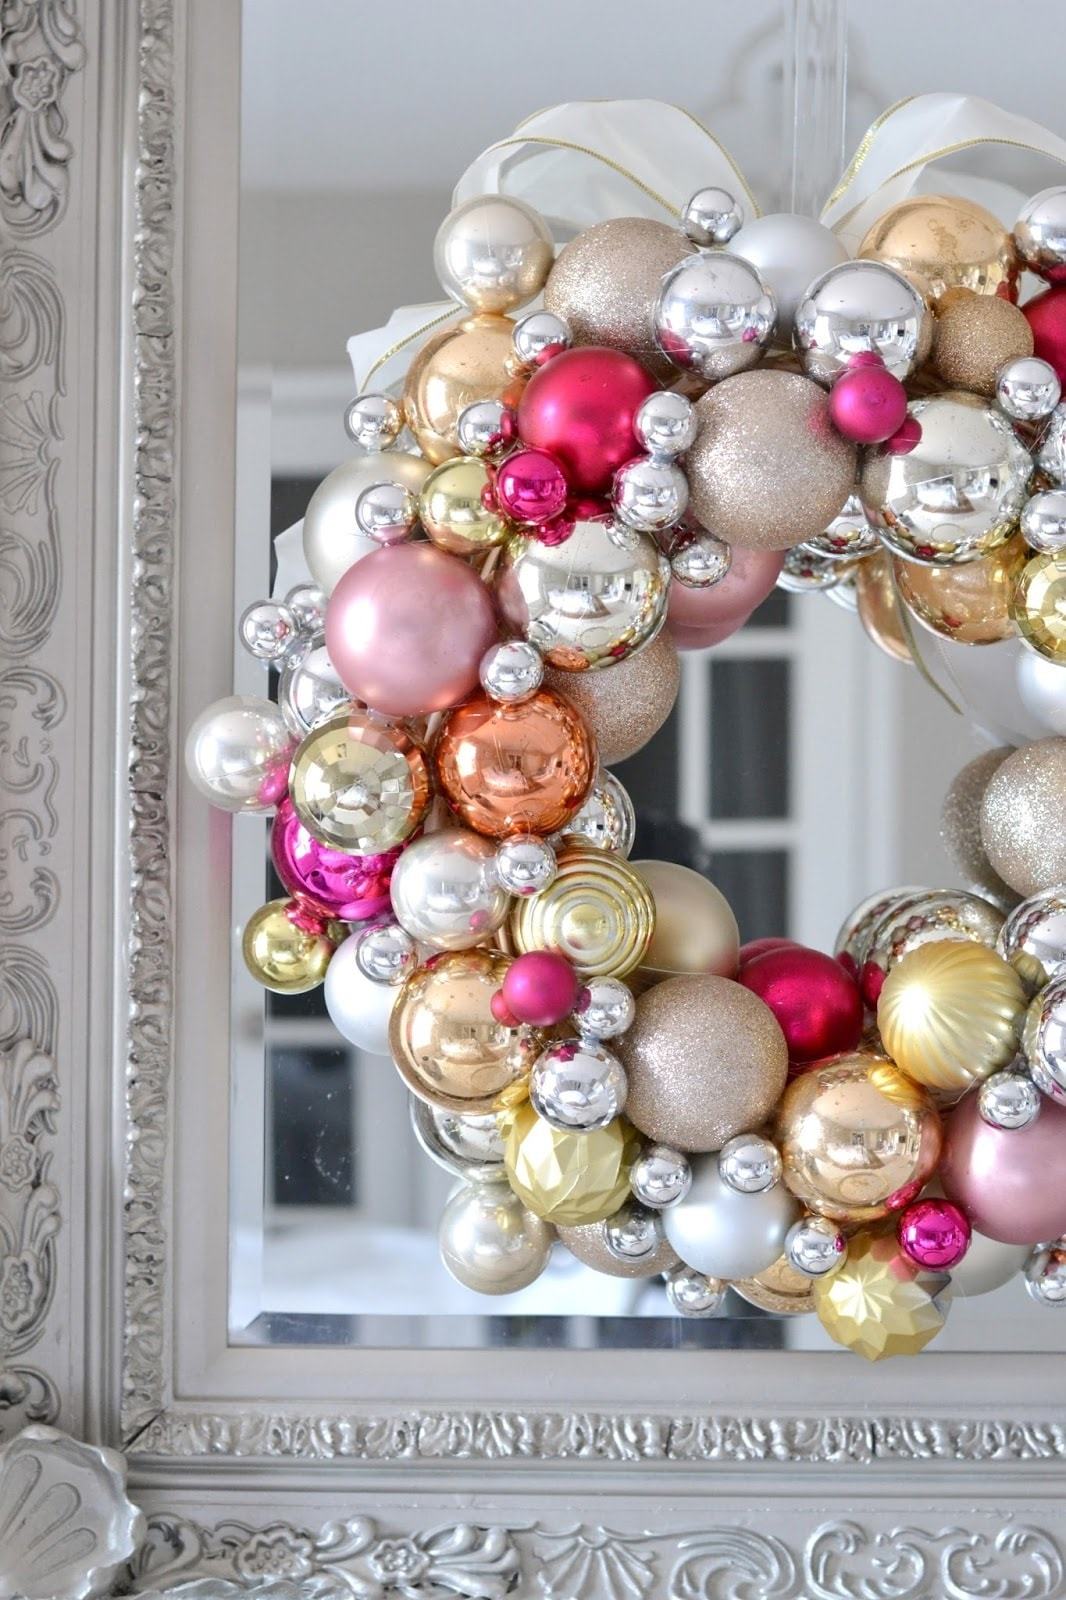 A close up of a wreath made of ornaments